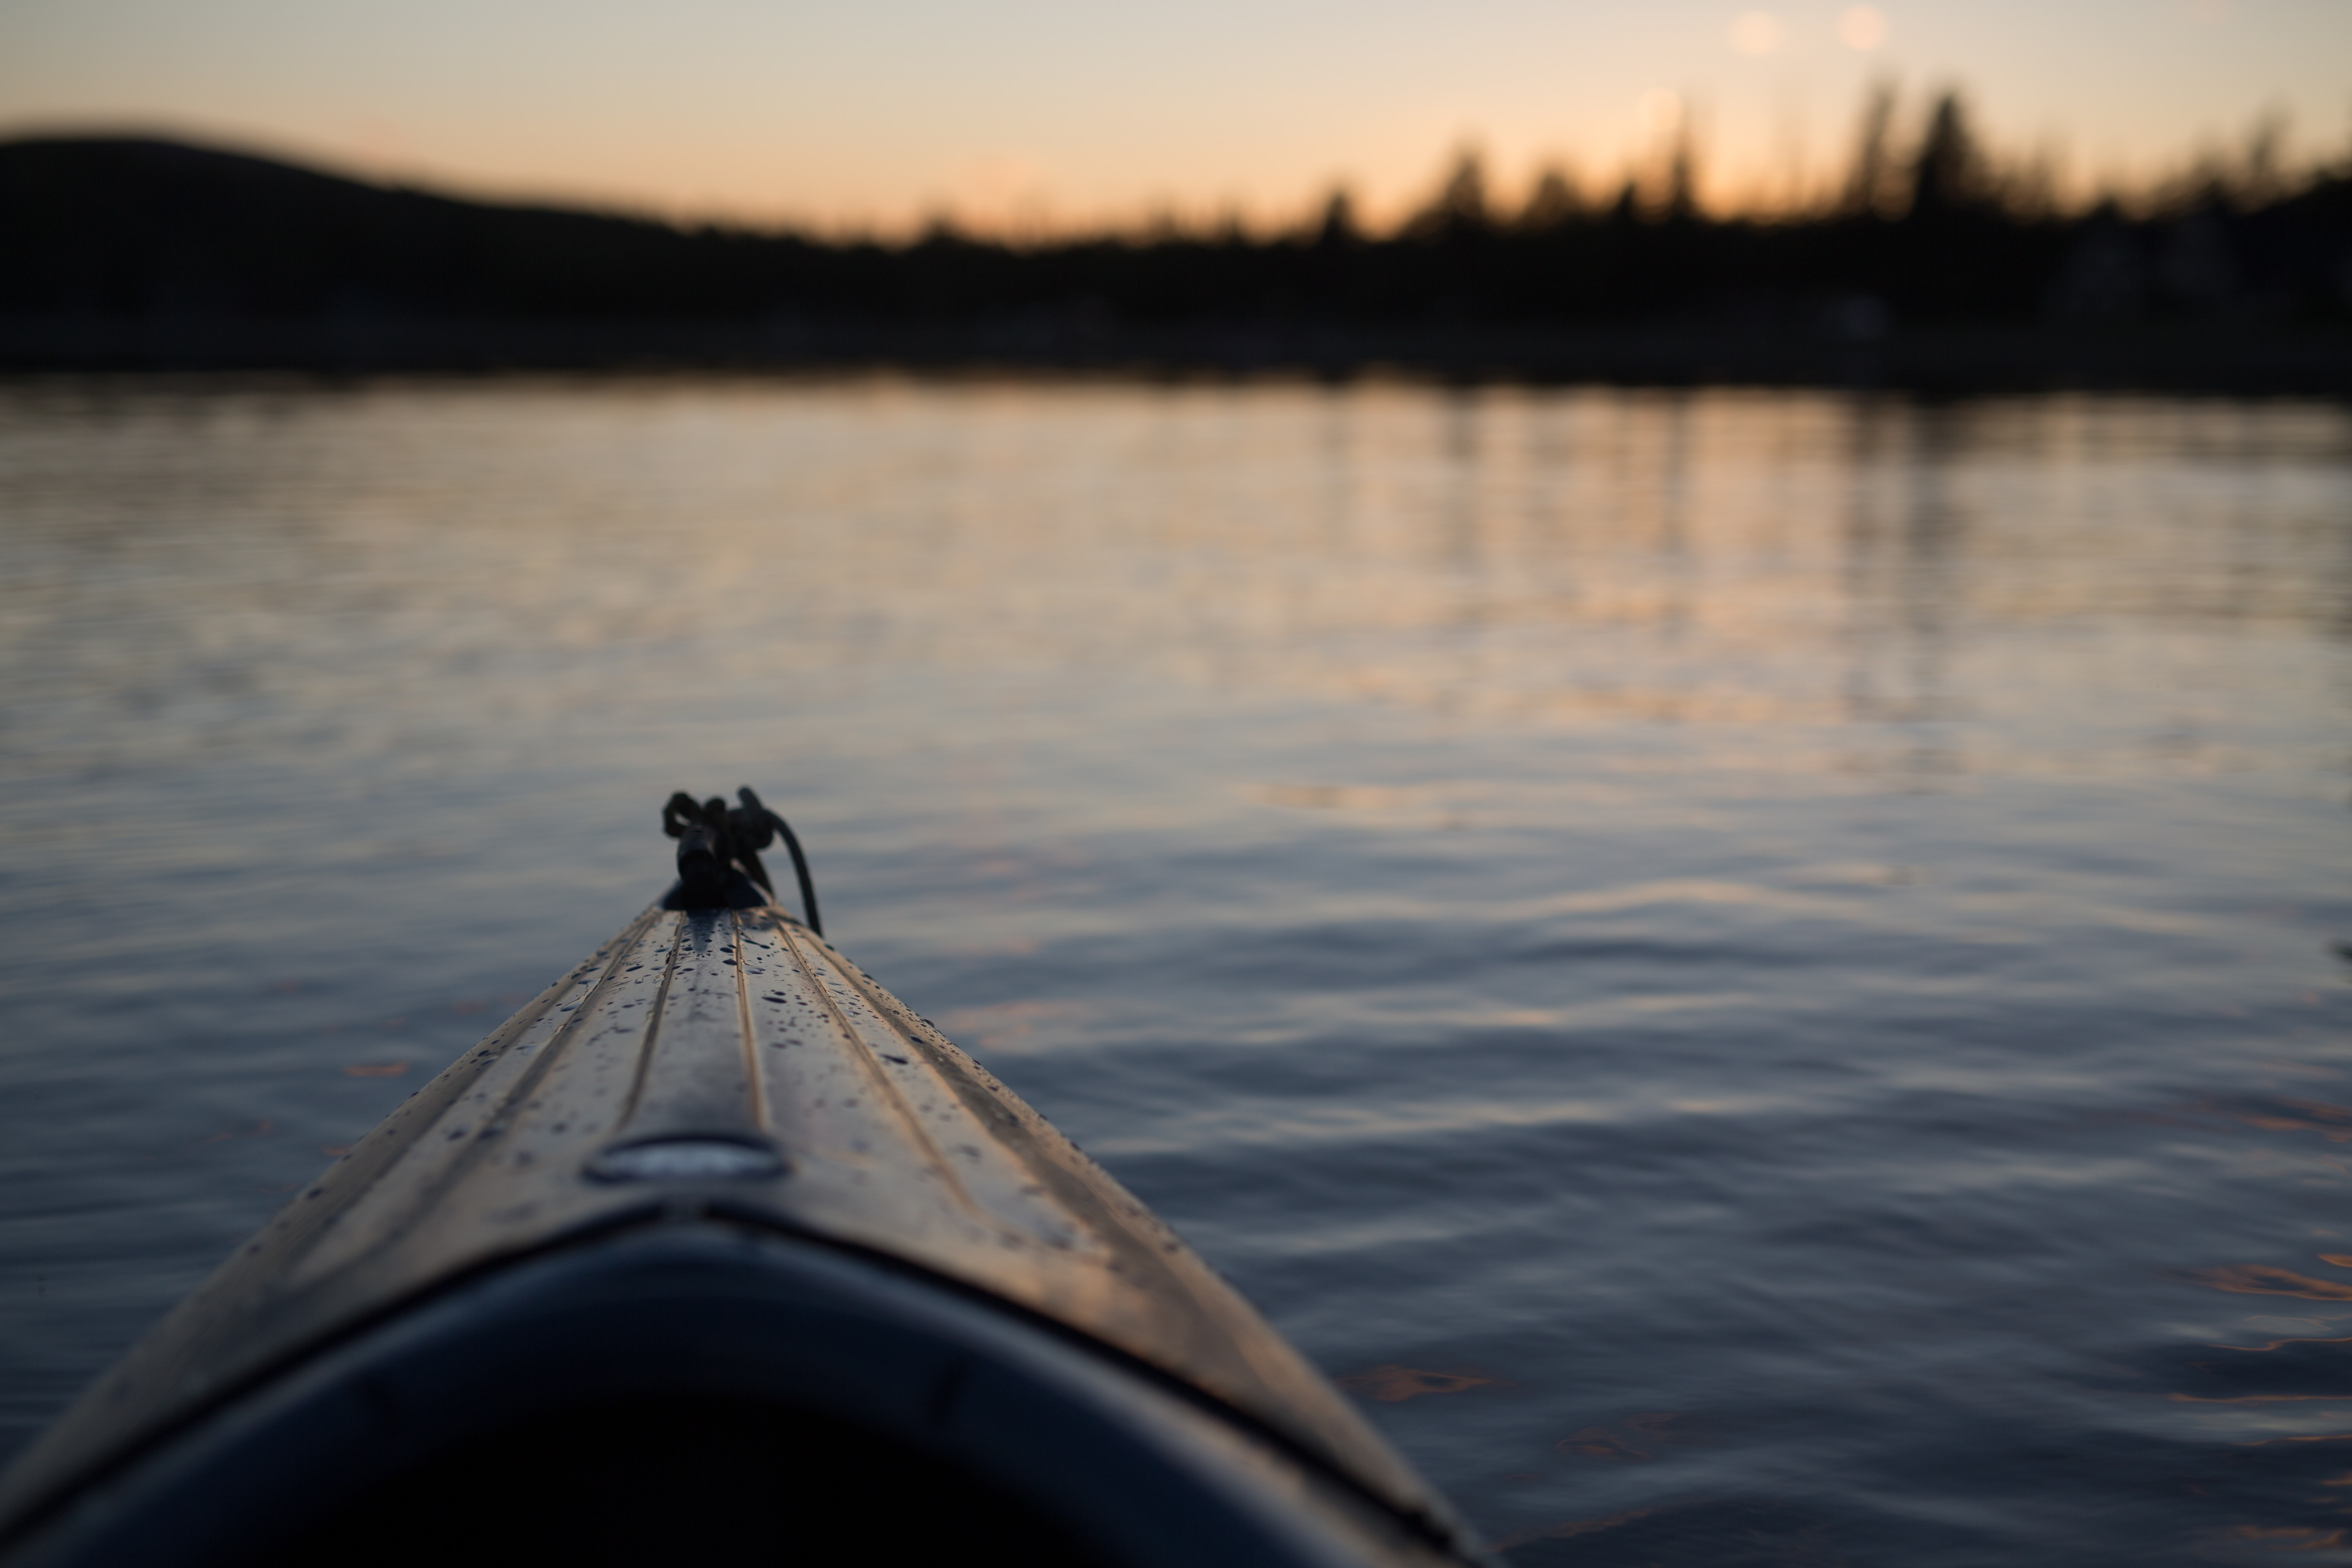 shallow focus photography of white boat on body of water